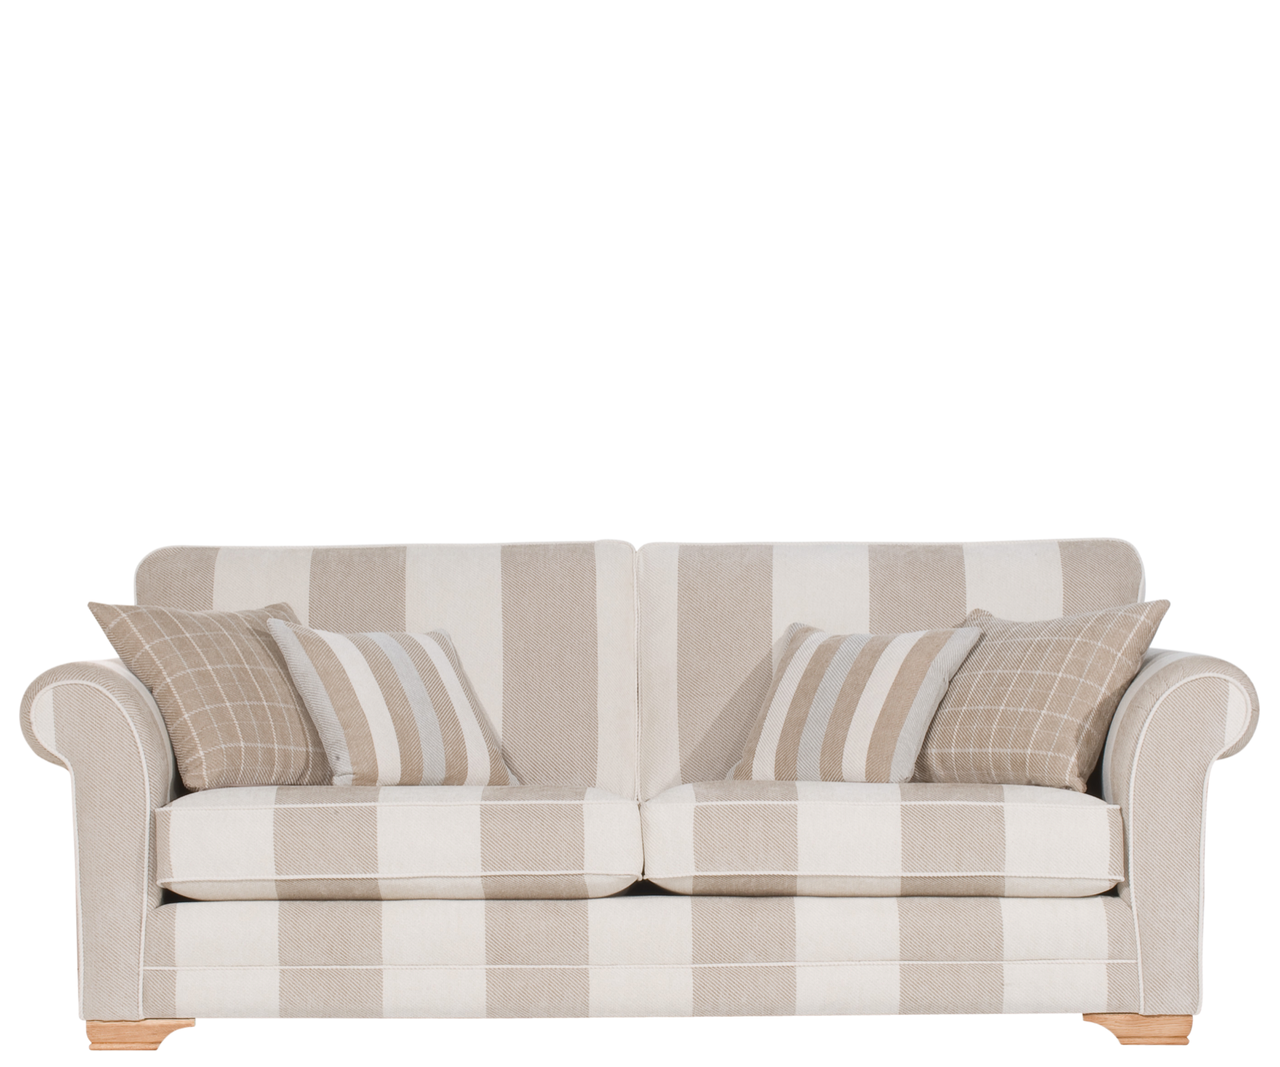 Harborough 4 Seater Split Sofa Standard Back